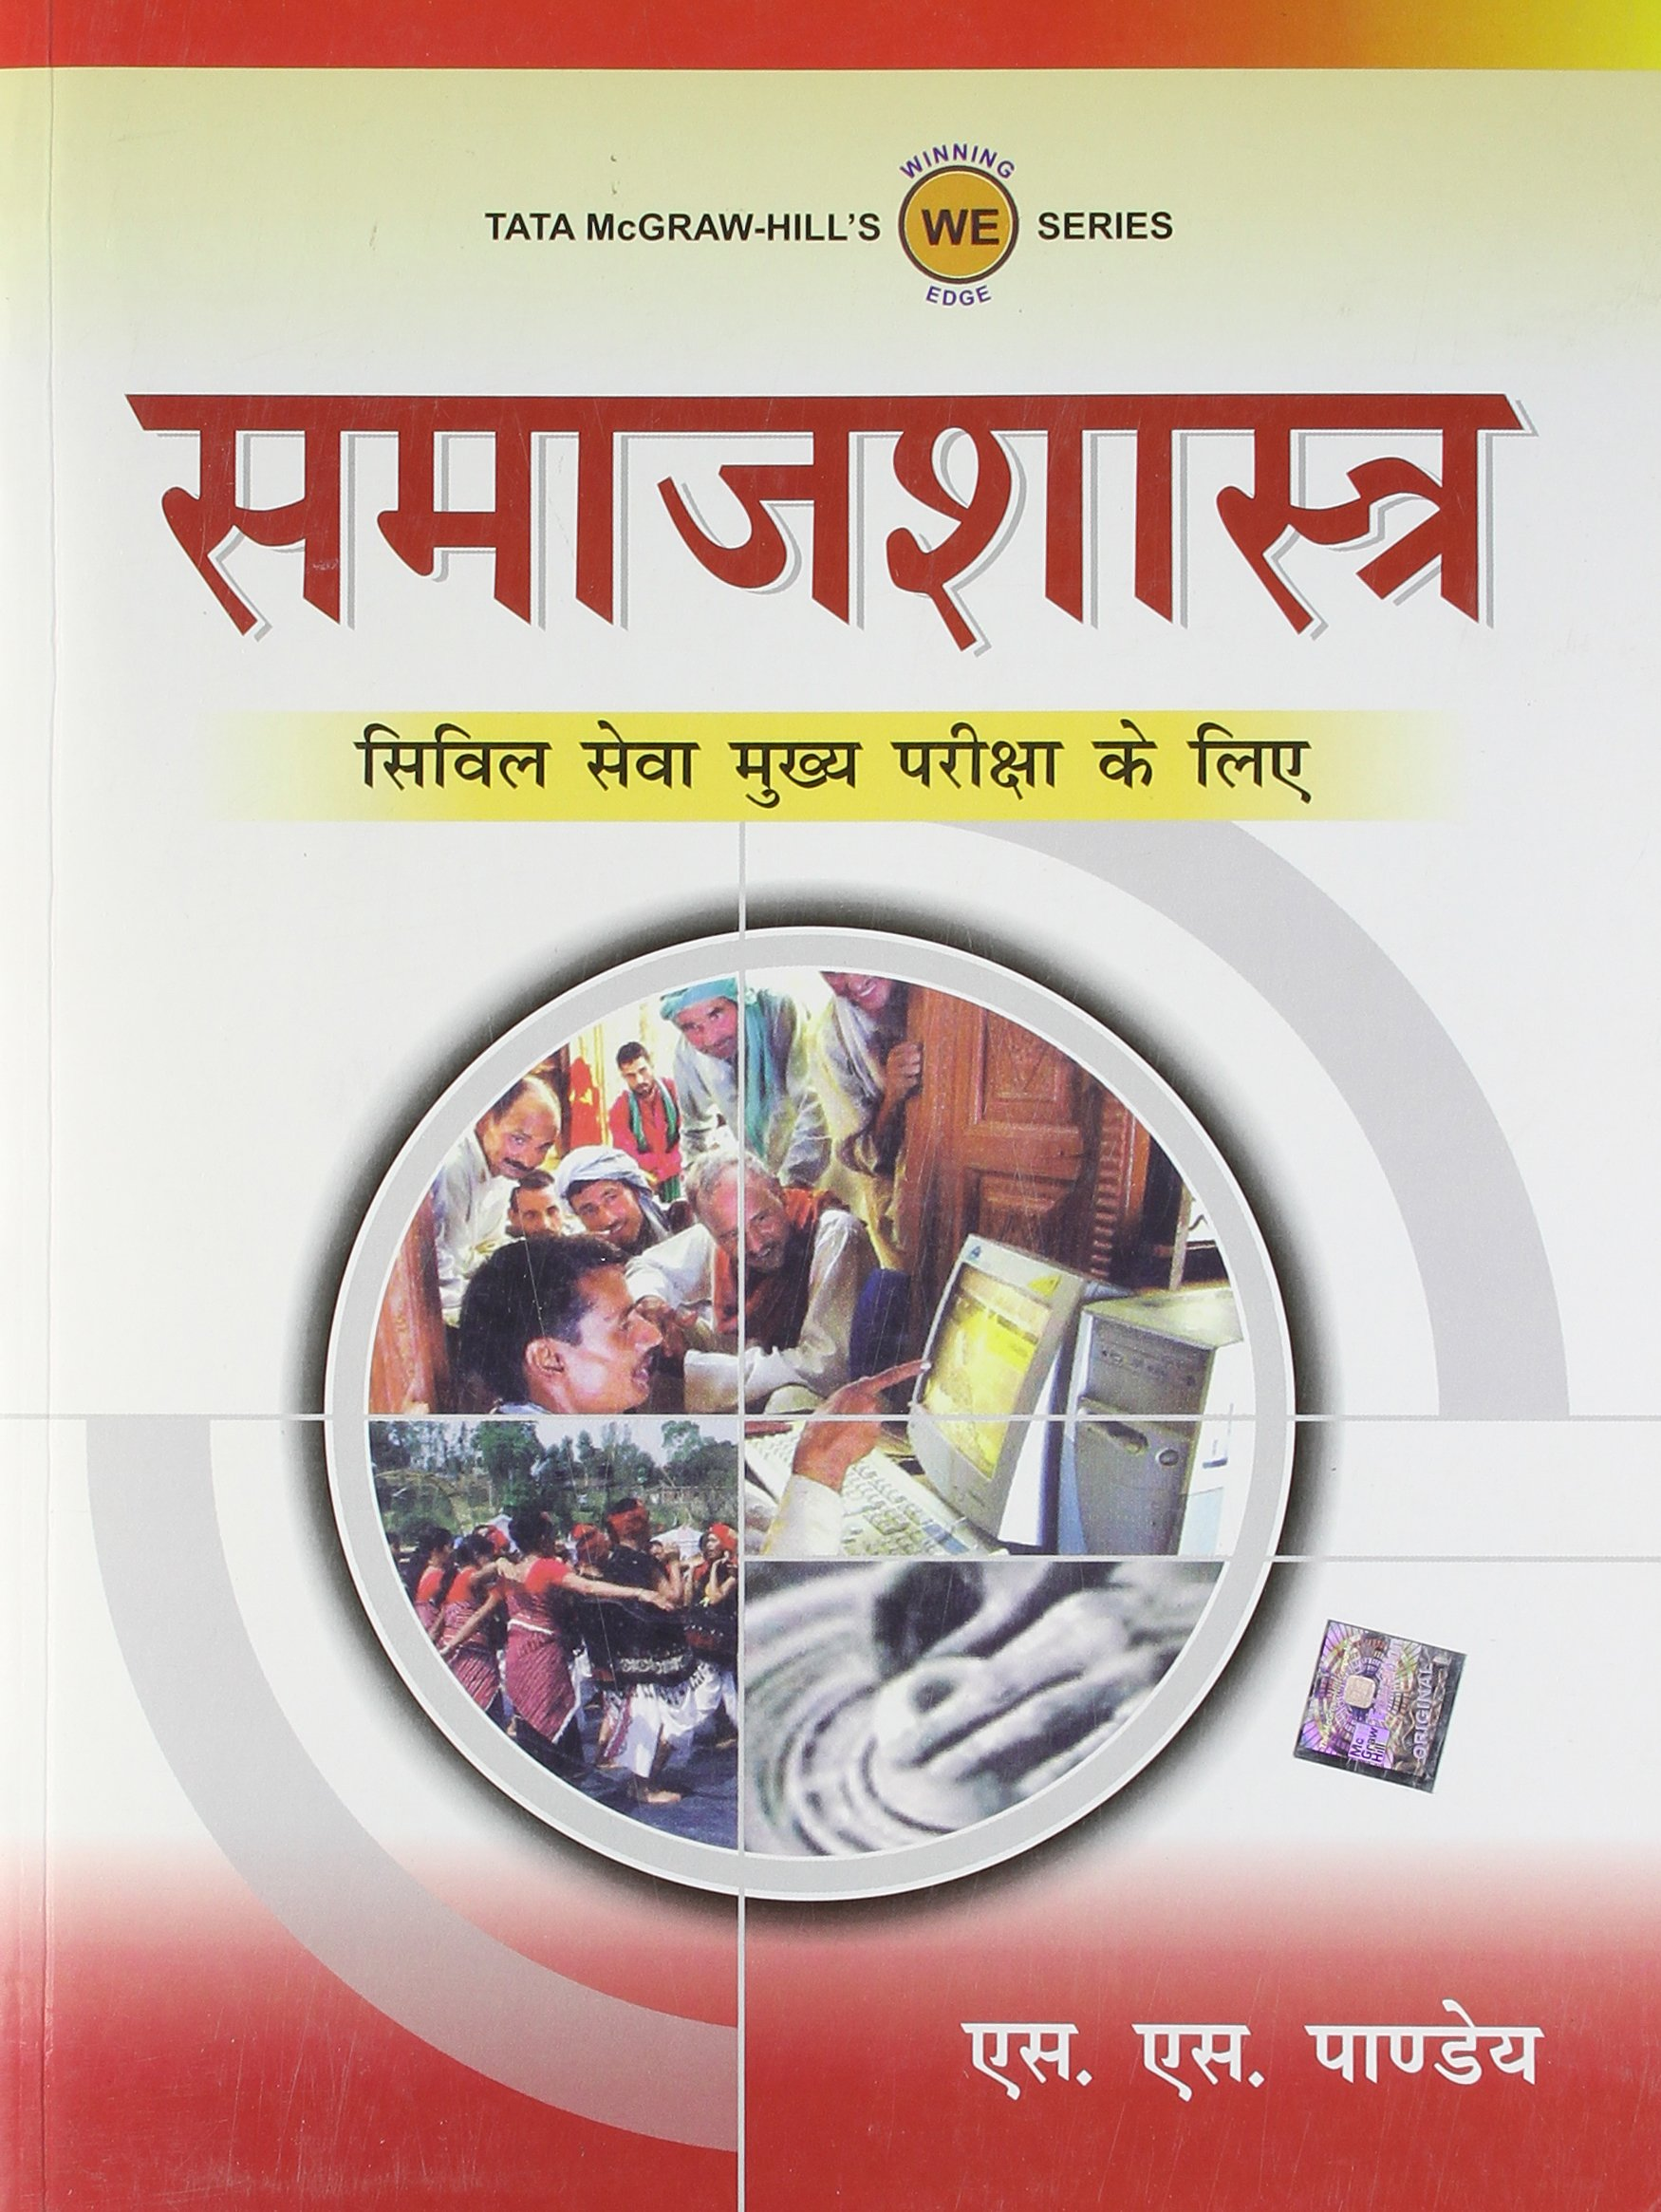 ias sociology books in hindi medium, sociology books for ias mains in hindi medium, best sociology books for ias in hindi medium, ias sociology books in hindi, sociology books in hindi for ias exam, sociology books in hindi for ias, sociology books in hindi medium for ias, sociology books in hindi for ias mains,